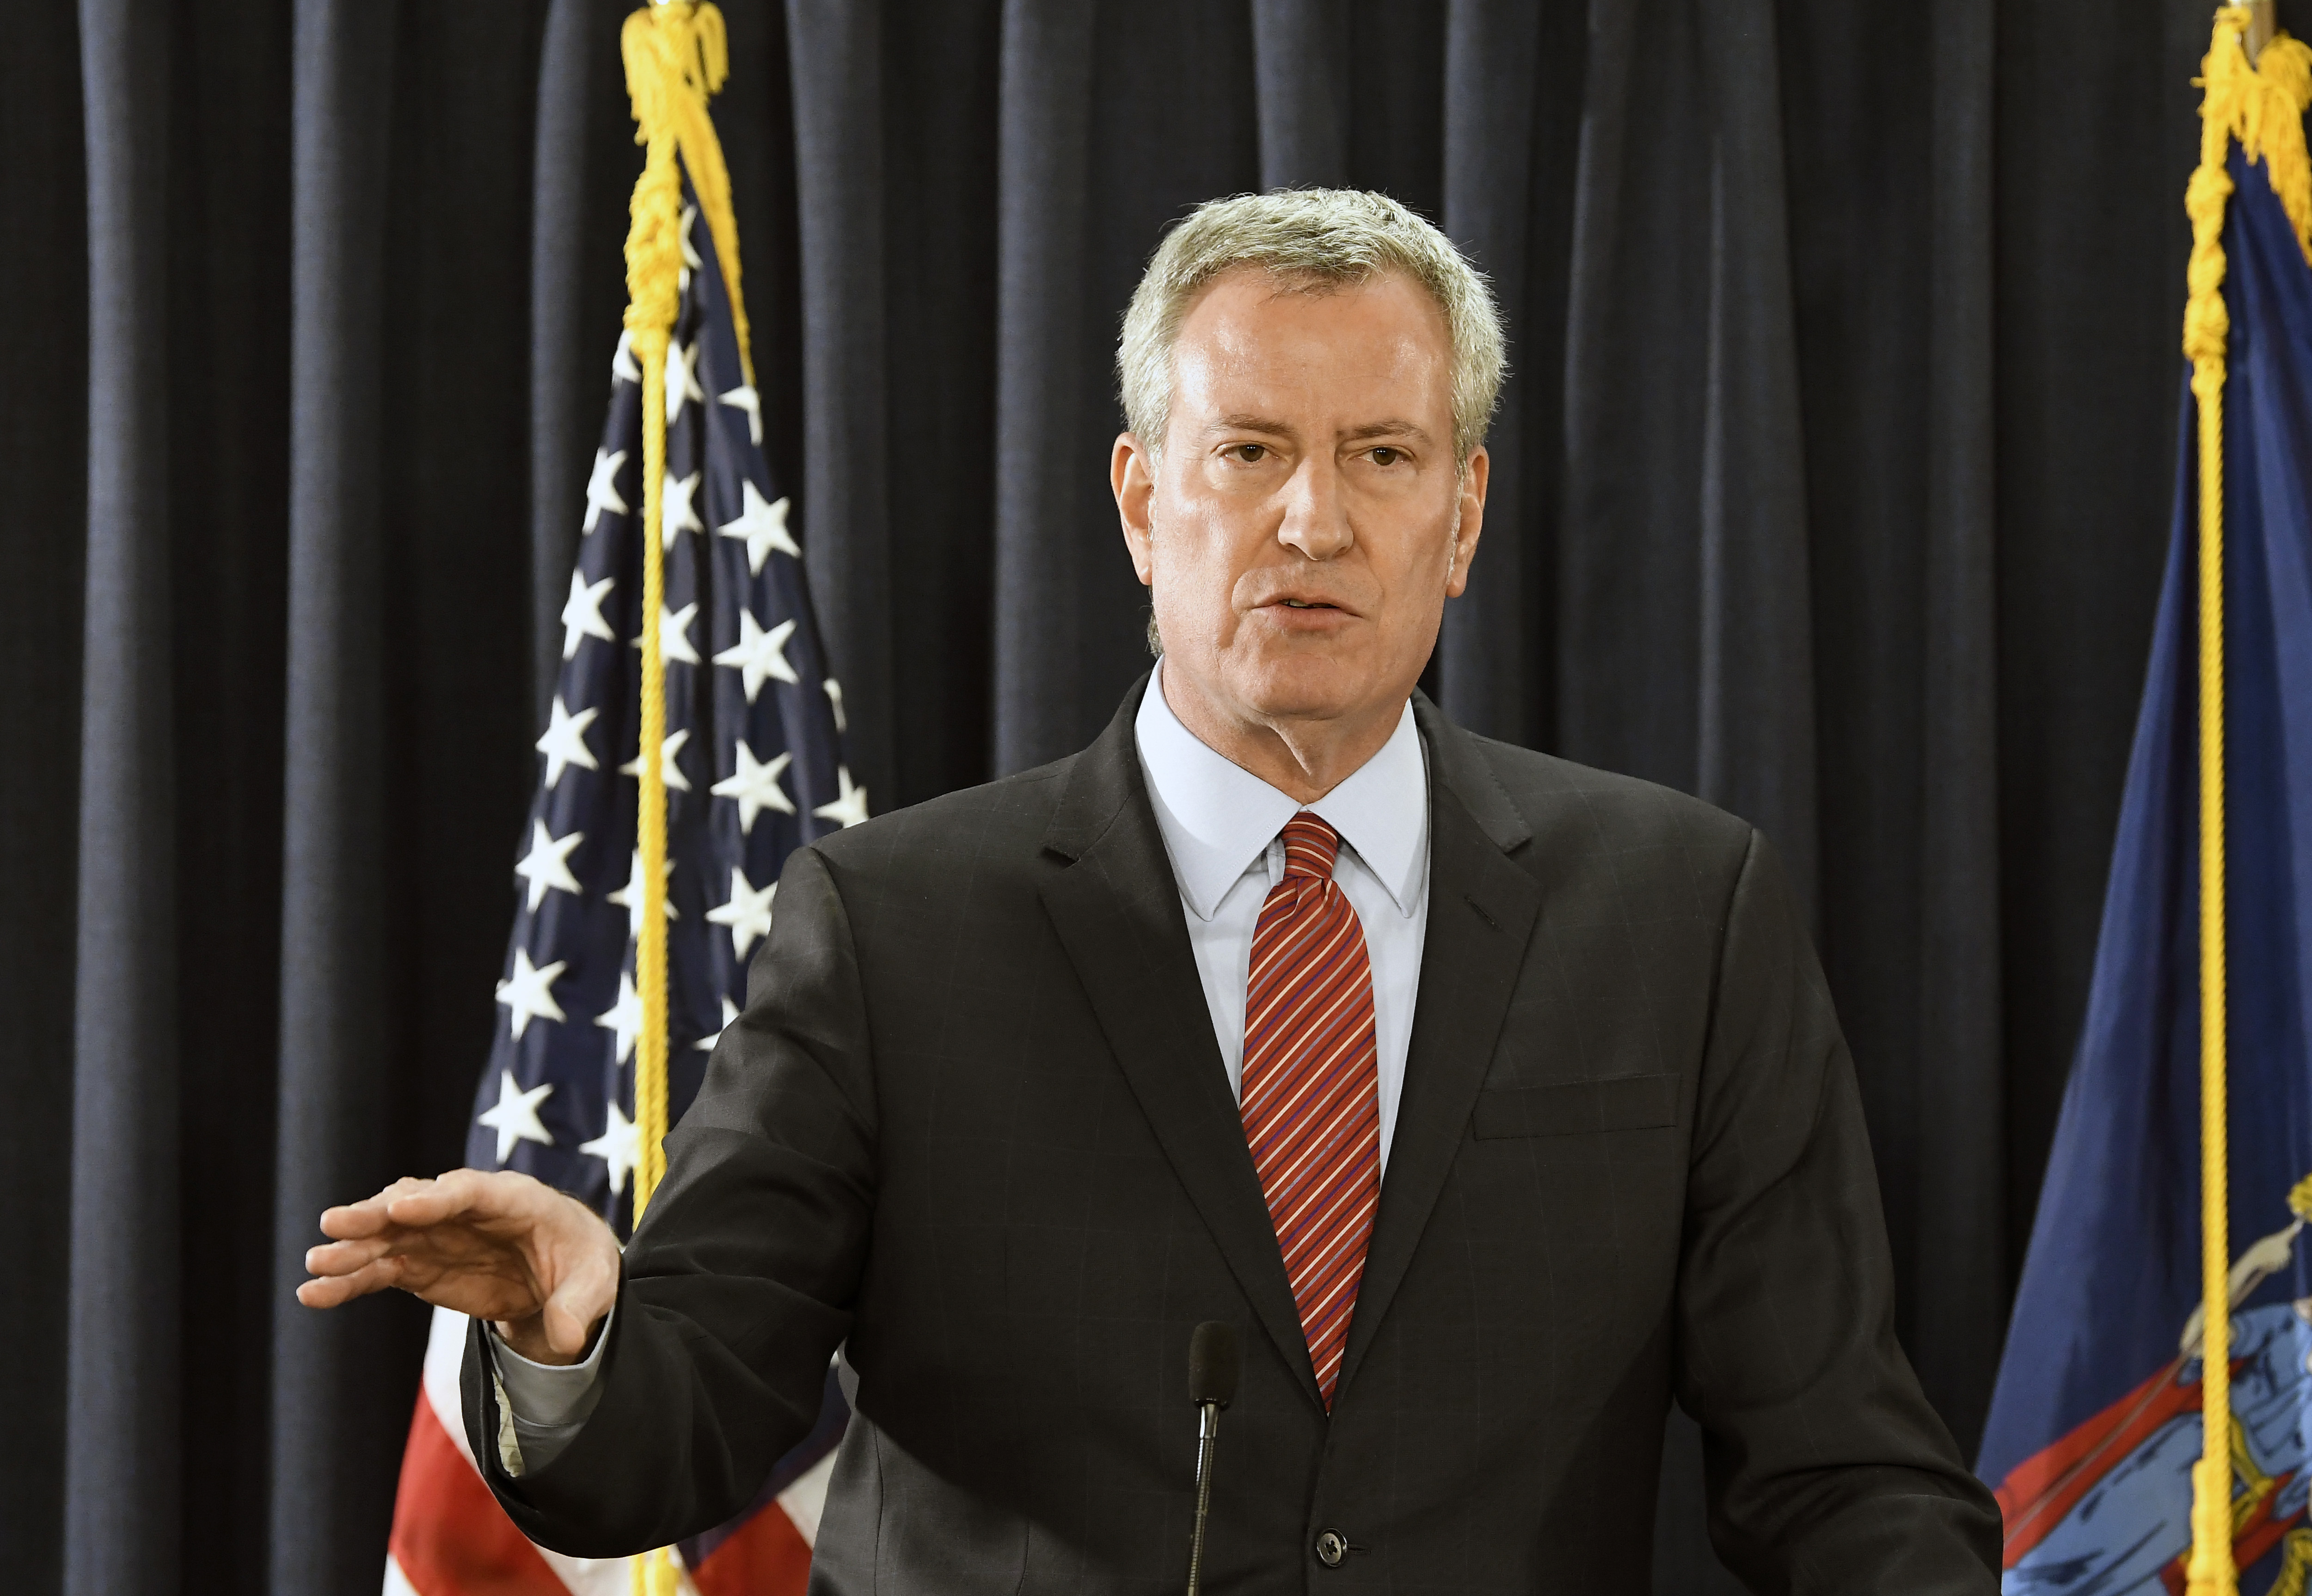 Bill de Blasio divests New York pensions, sues oil companies for climate change